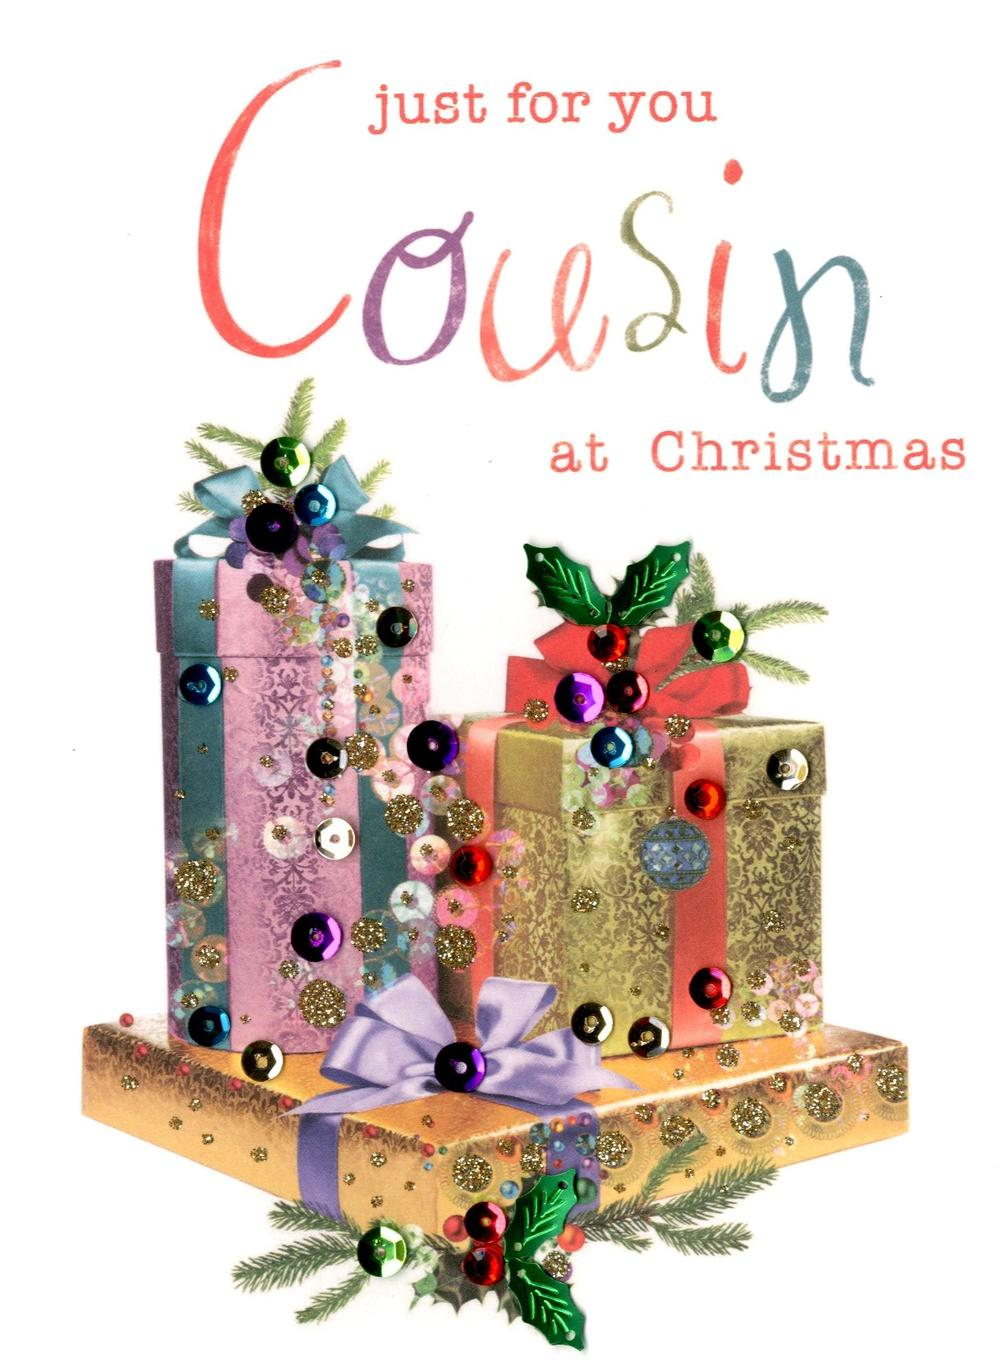 For You Cousin Embellished Christmas Card